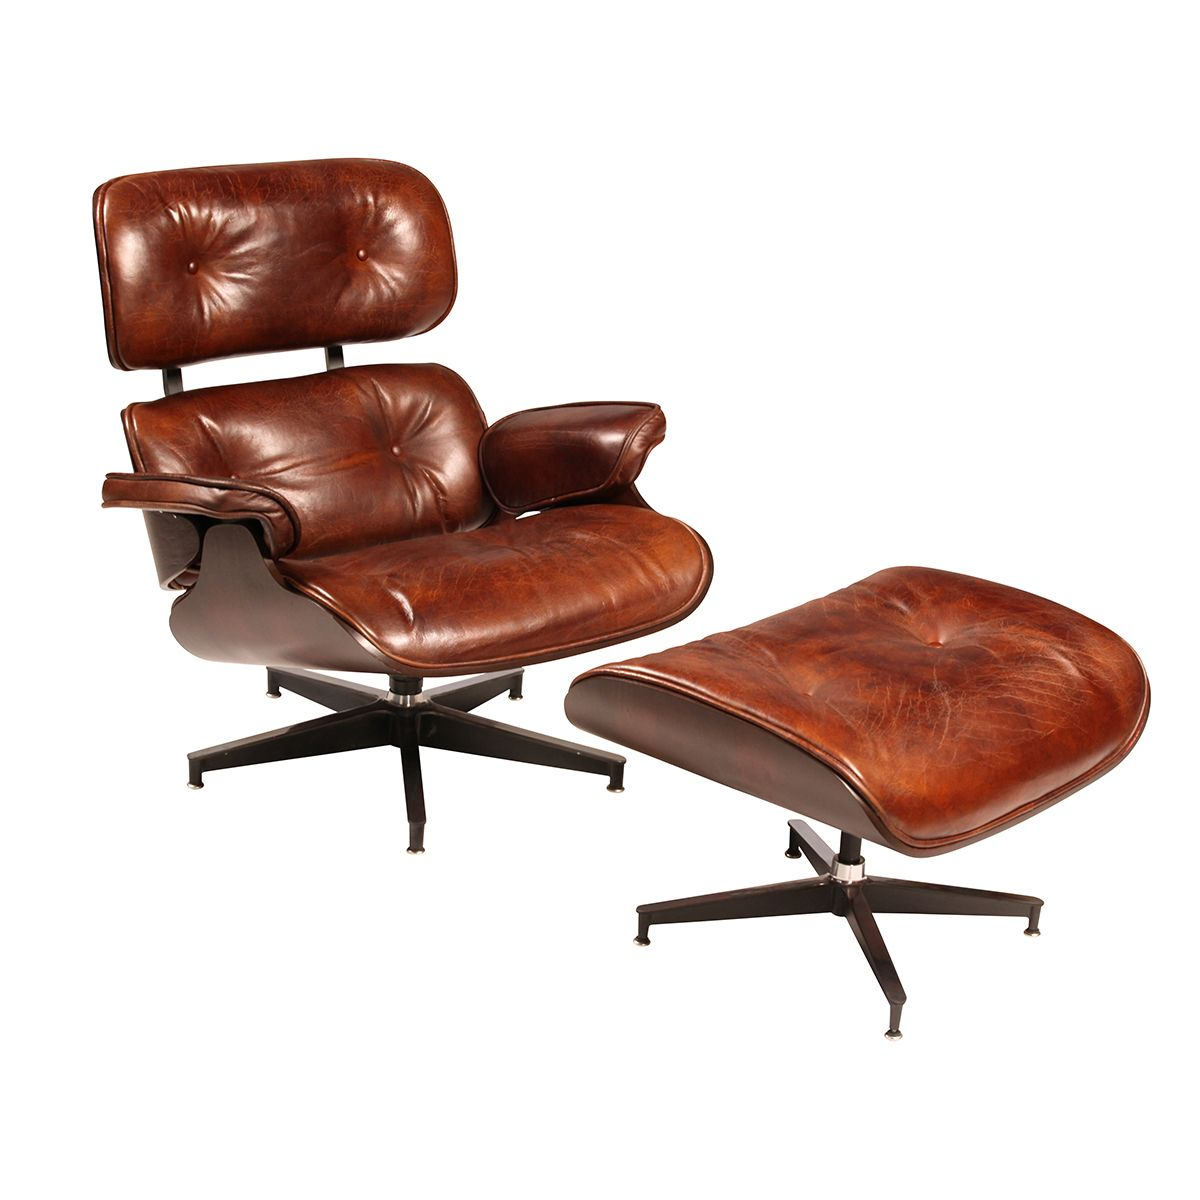 Leather Chair with Ottoman.  Tufted leather arm chair with matching ottoman…